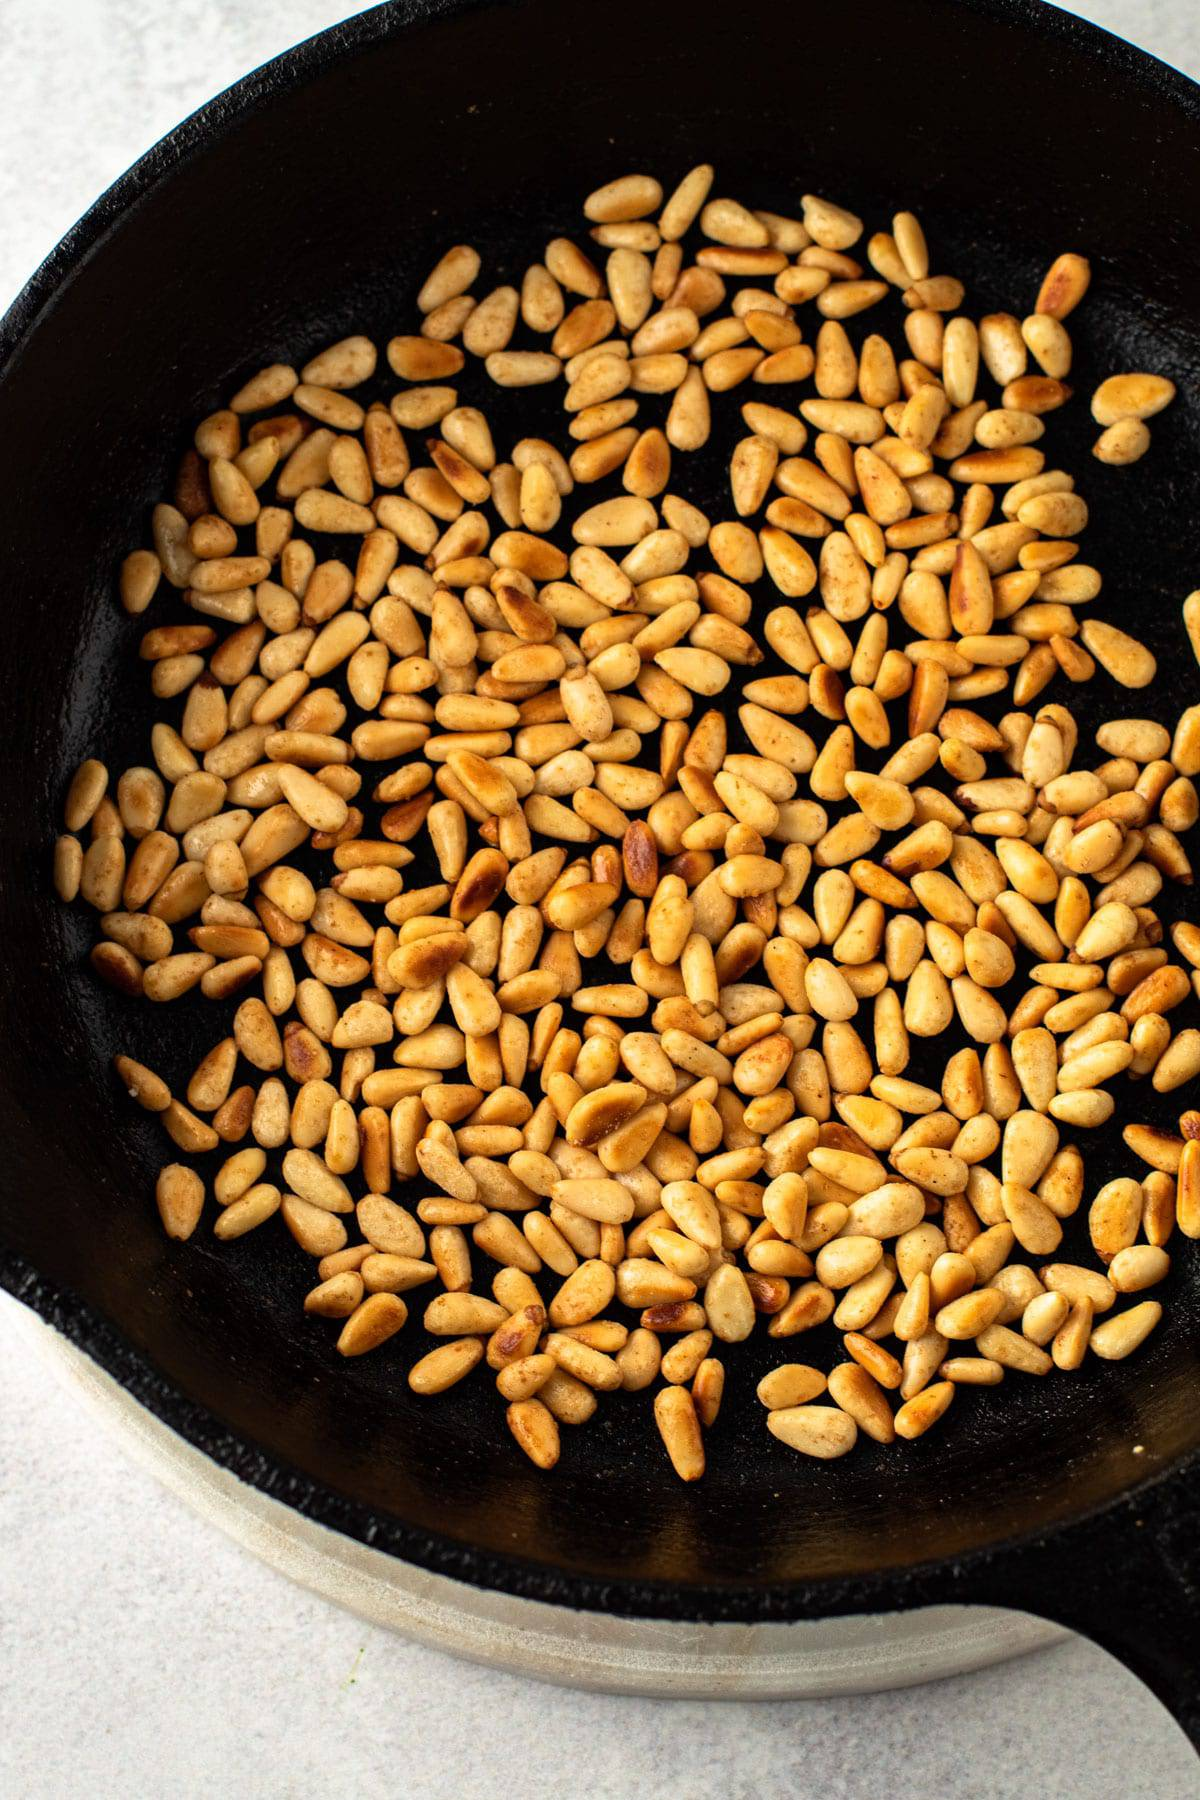 Toasted pine nuts for cauliflower soup garnish.